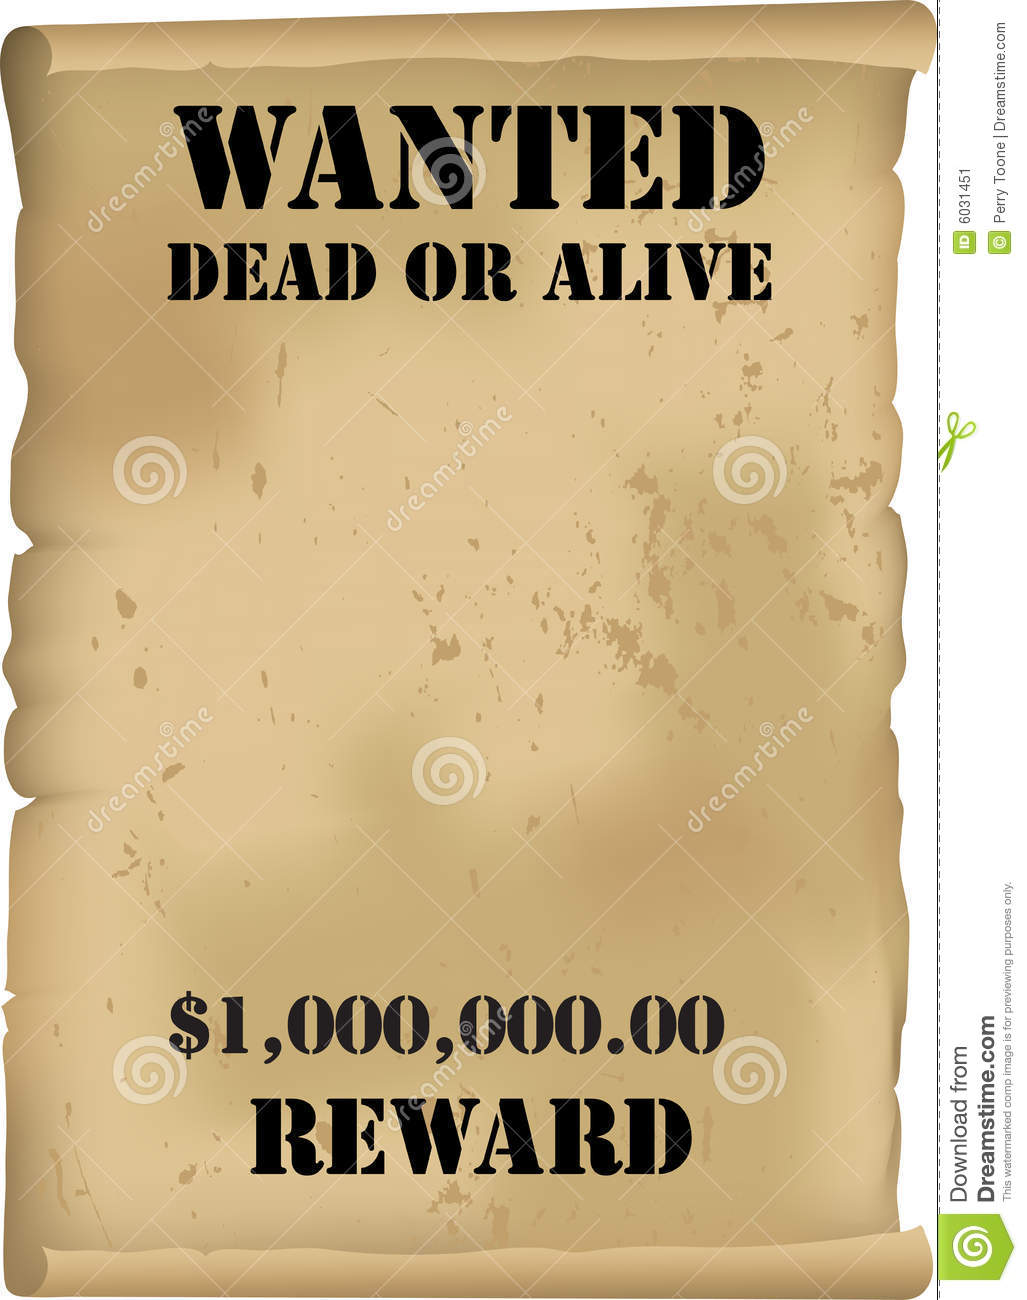 Blank Wanted Poster Template  Printable Wanted Posters